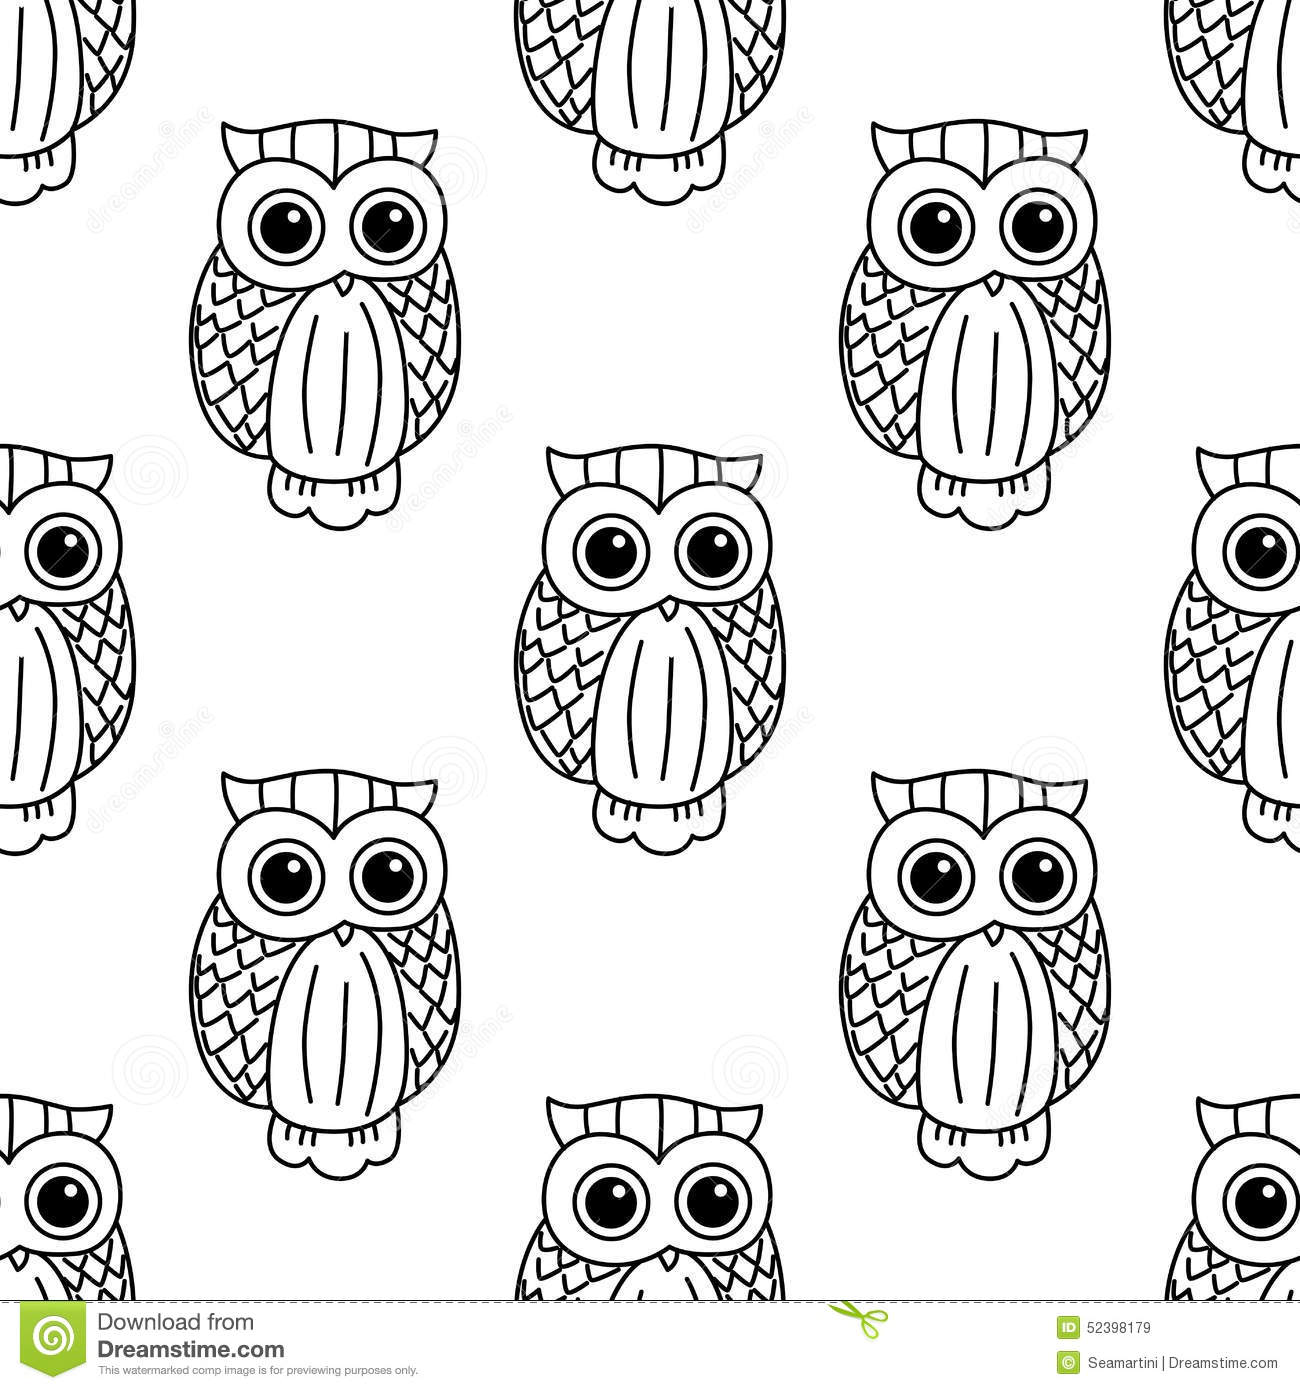 Vintage Cute Black Owls Seamless Pattern Stock Vector Illustration